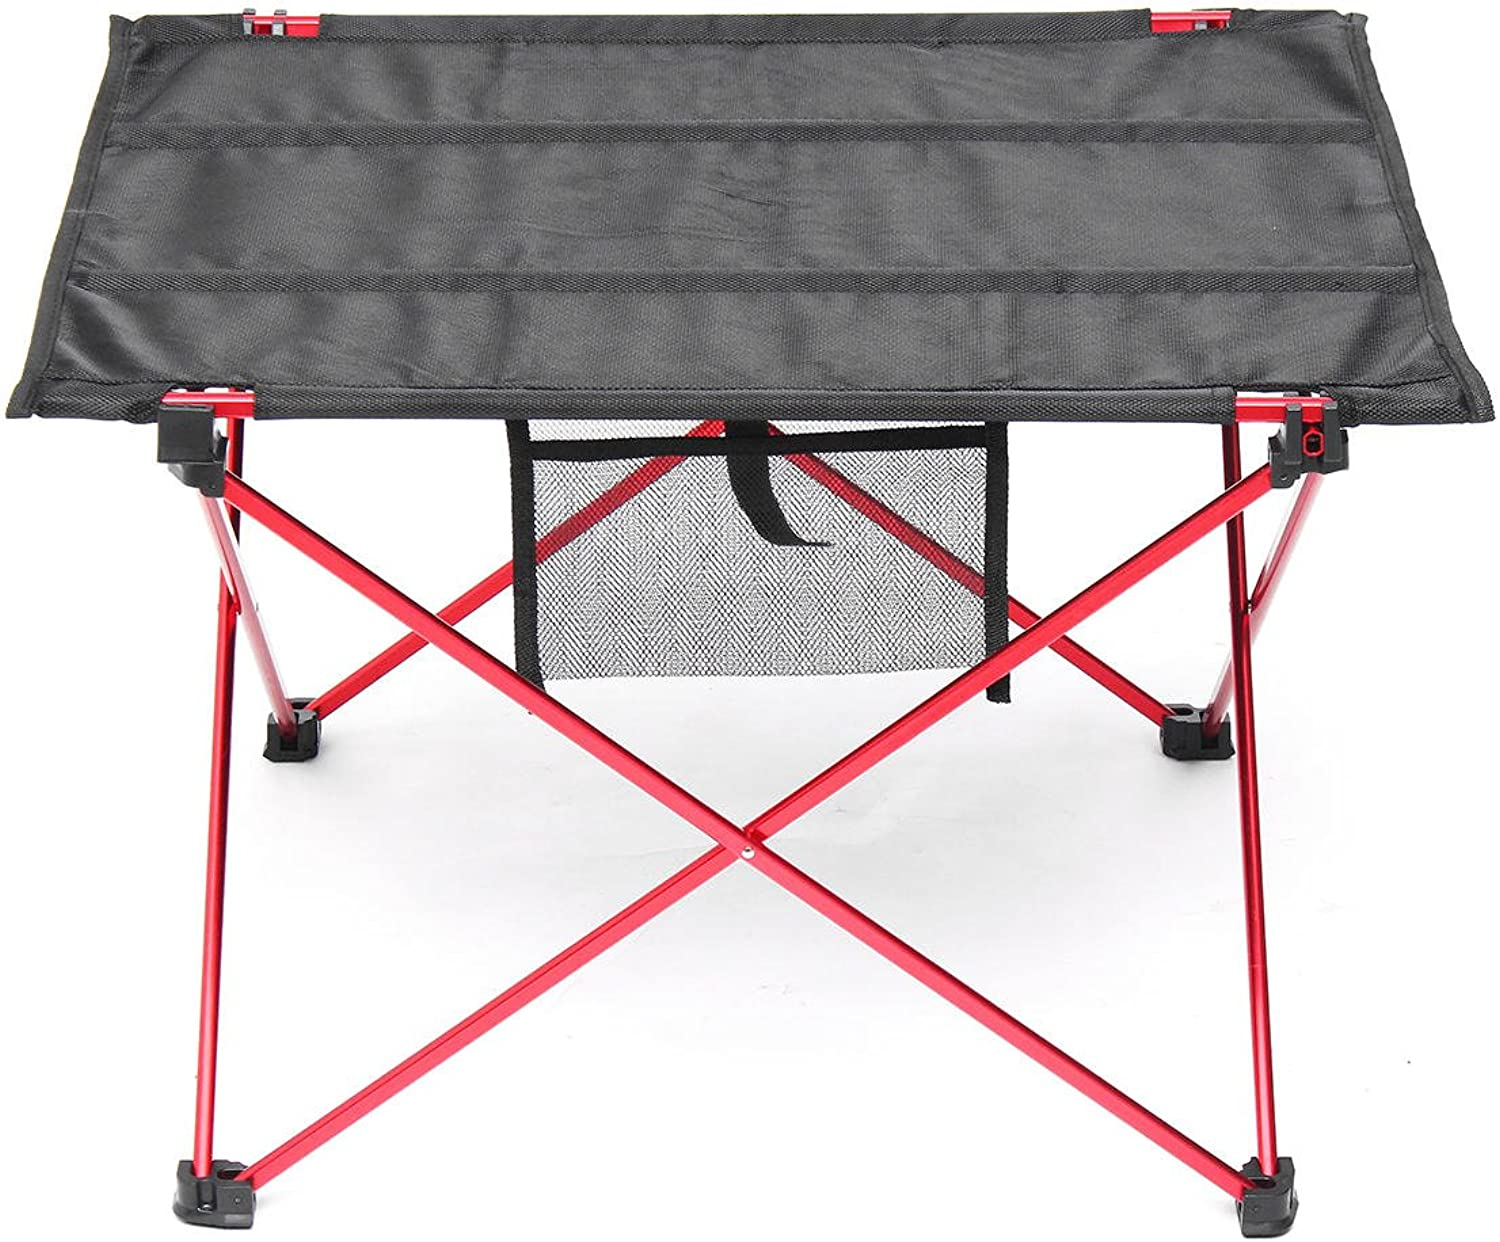 Outdoor Lightweight Aluminum Folding Table Portable Camping Flexible Desk